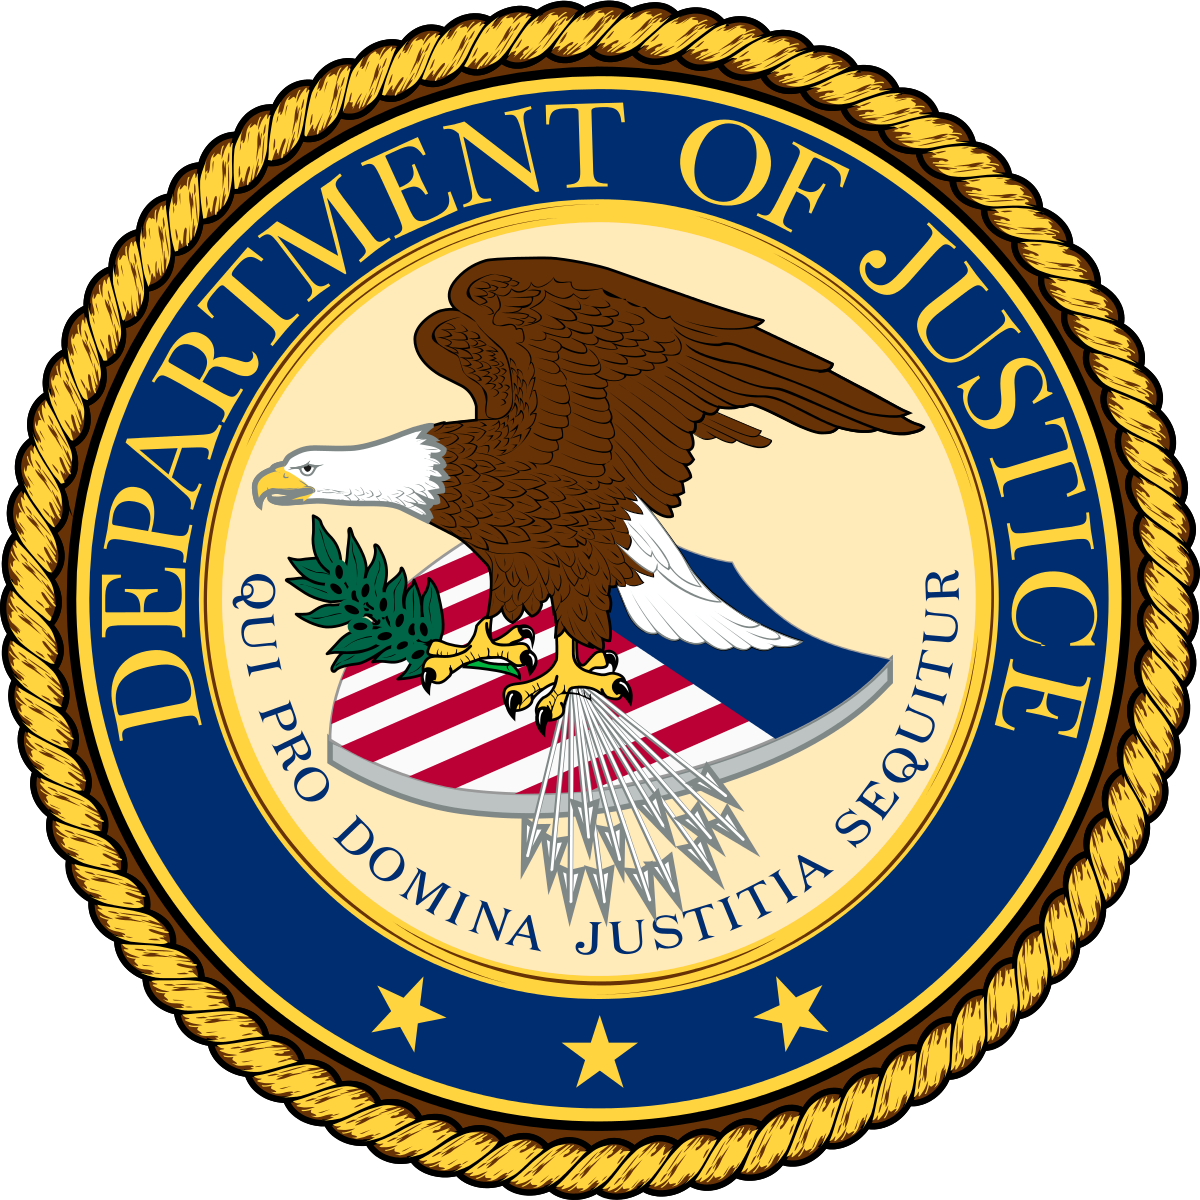 Department of Justice logo/seal